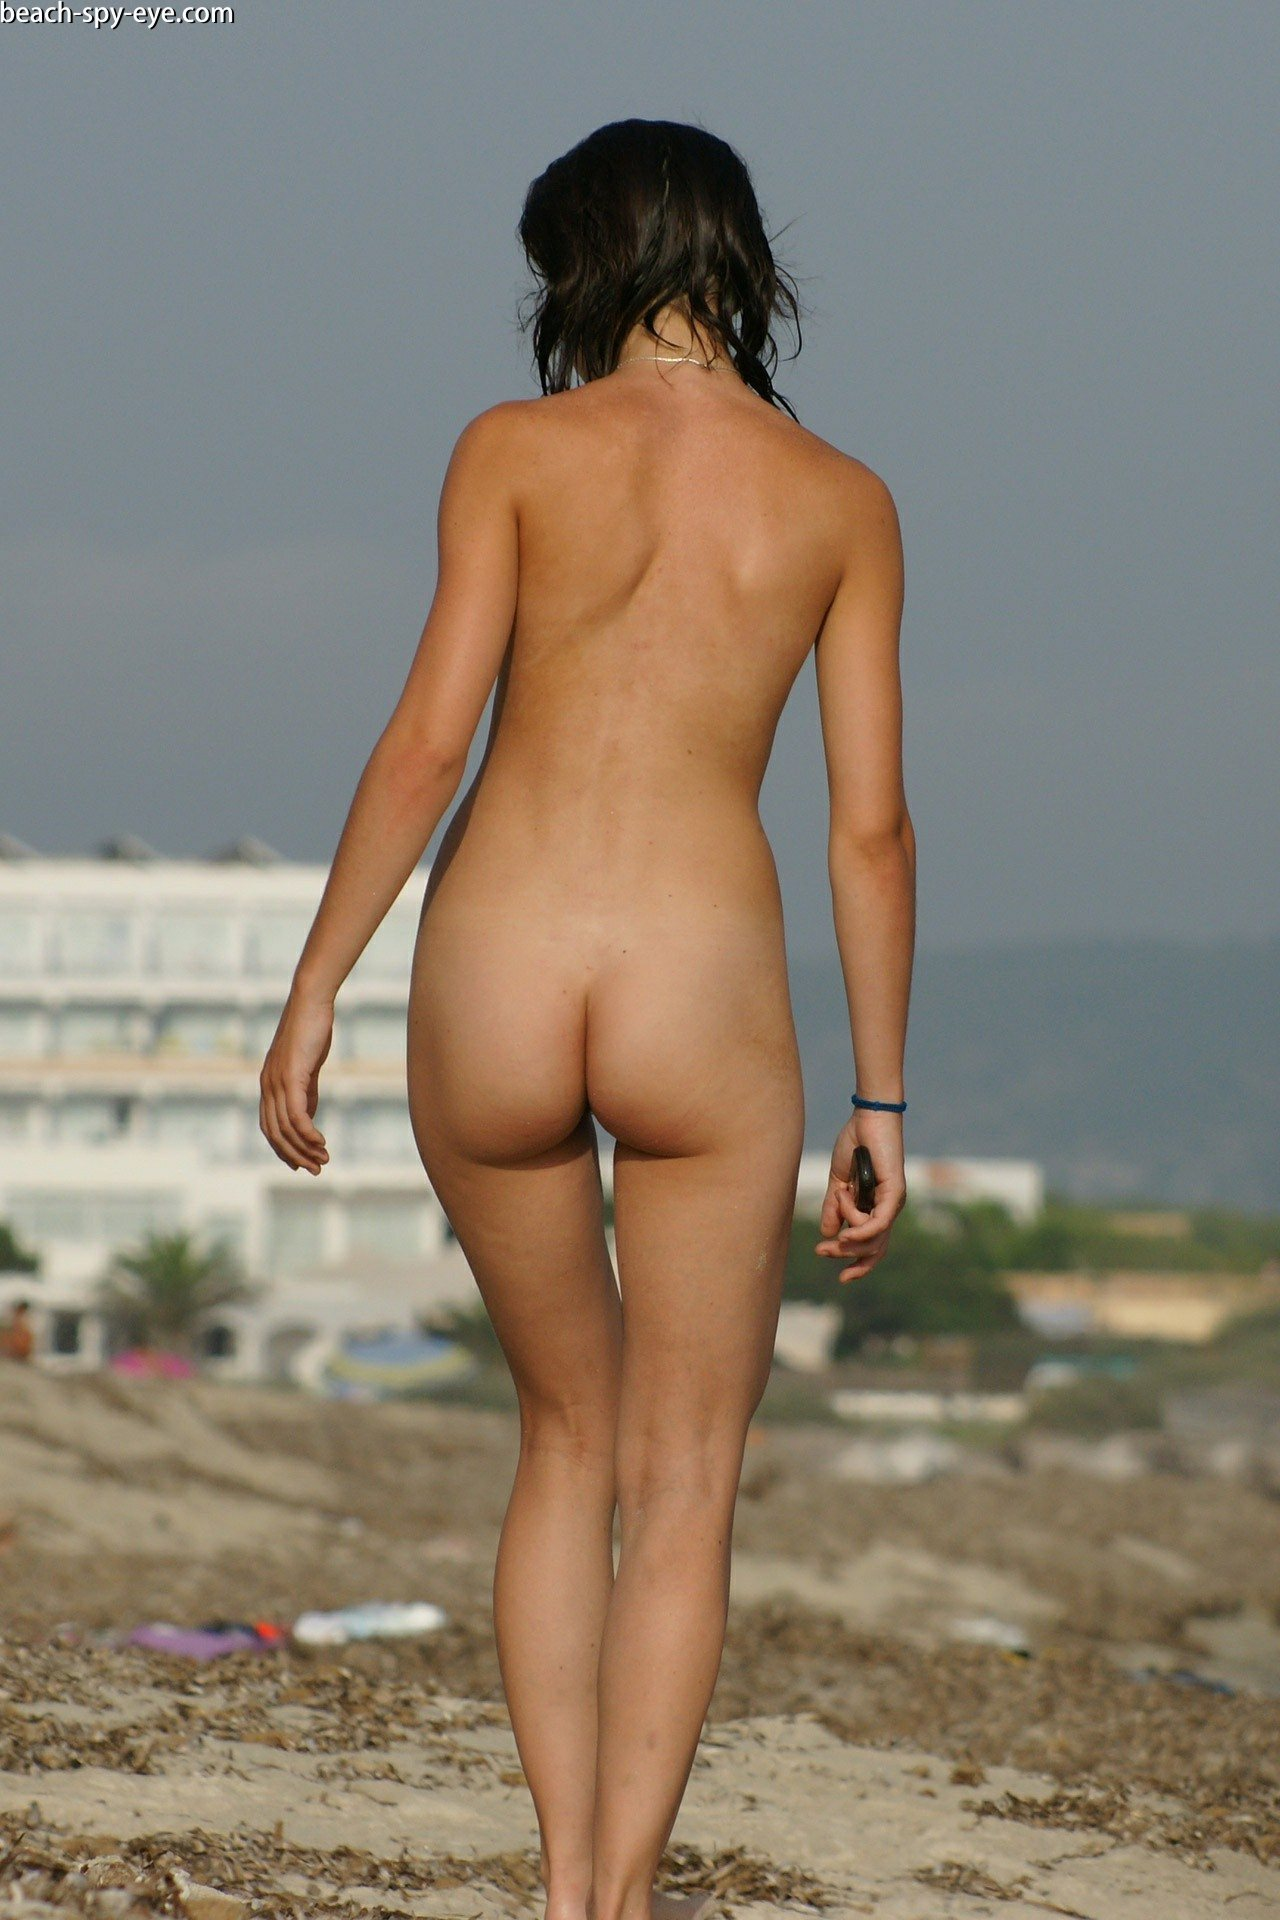 Hots Sexy Women Naked On Beach Png